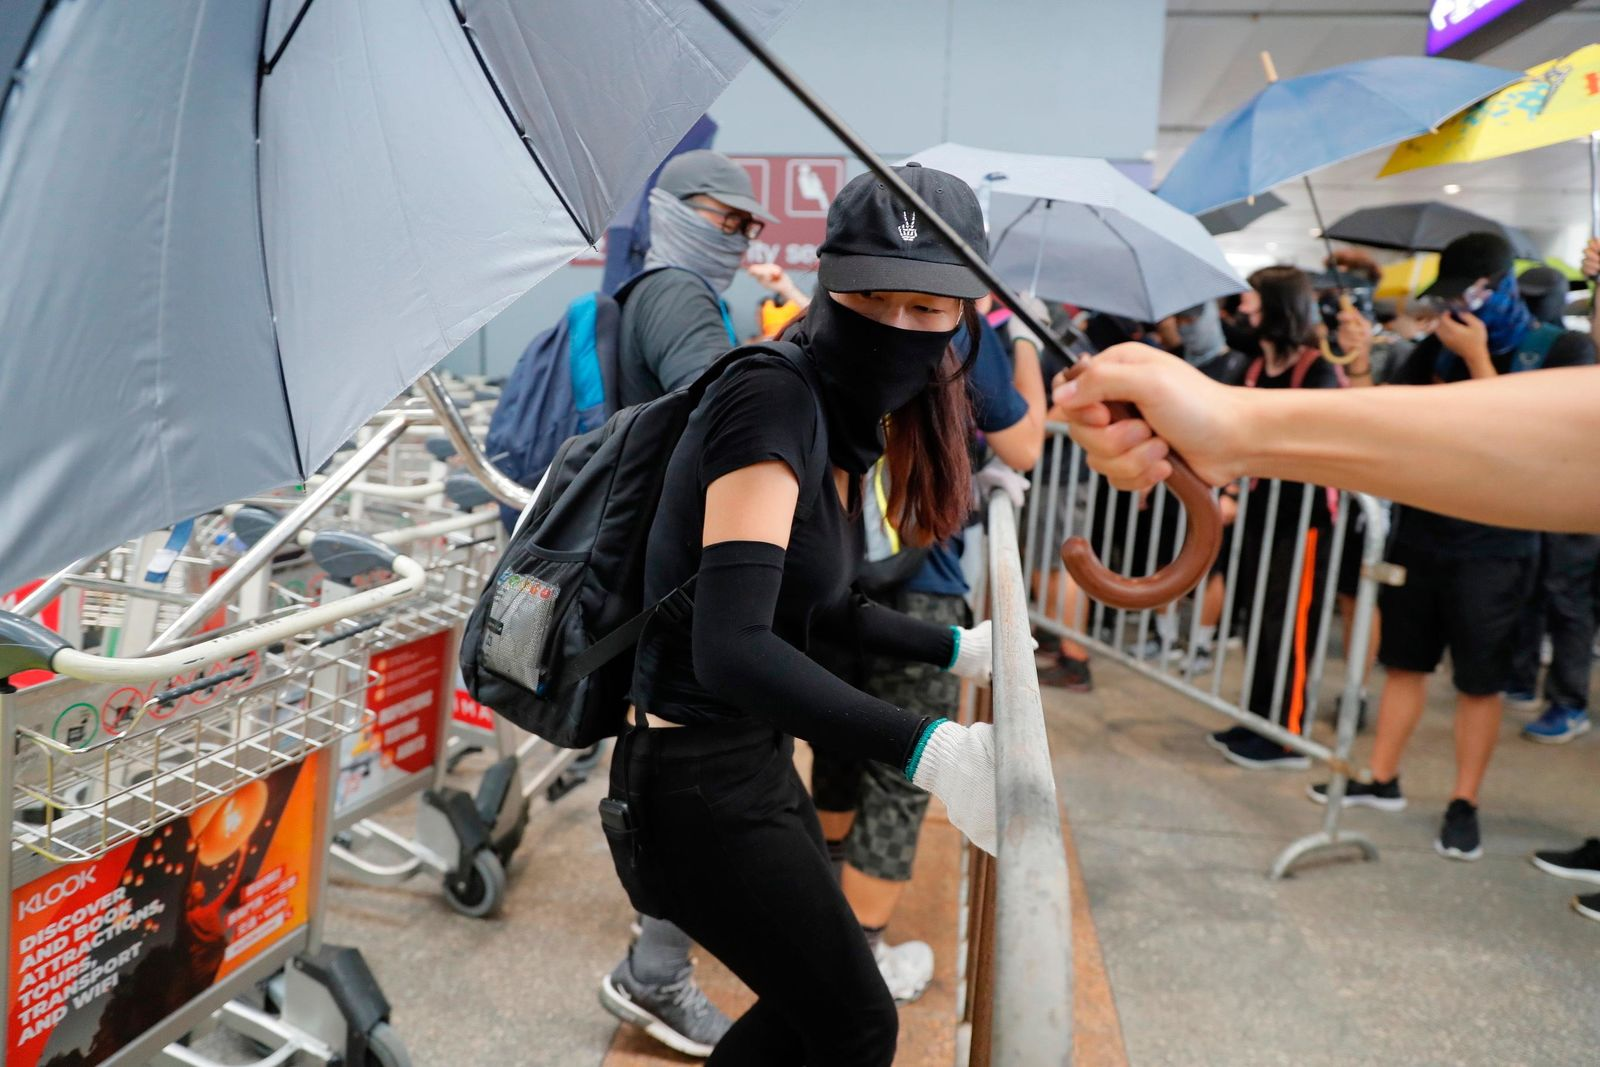 A protestor uses an umbrella to hide the identity of another as pro-democracy protestors create blockades outside the airport in, Hong Kong, Sunday, Sept.1, 2019.(AP Photo/Kin Cheung)